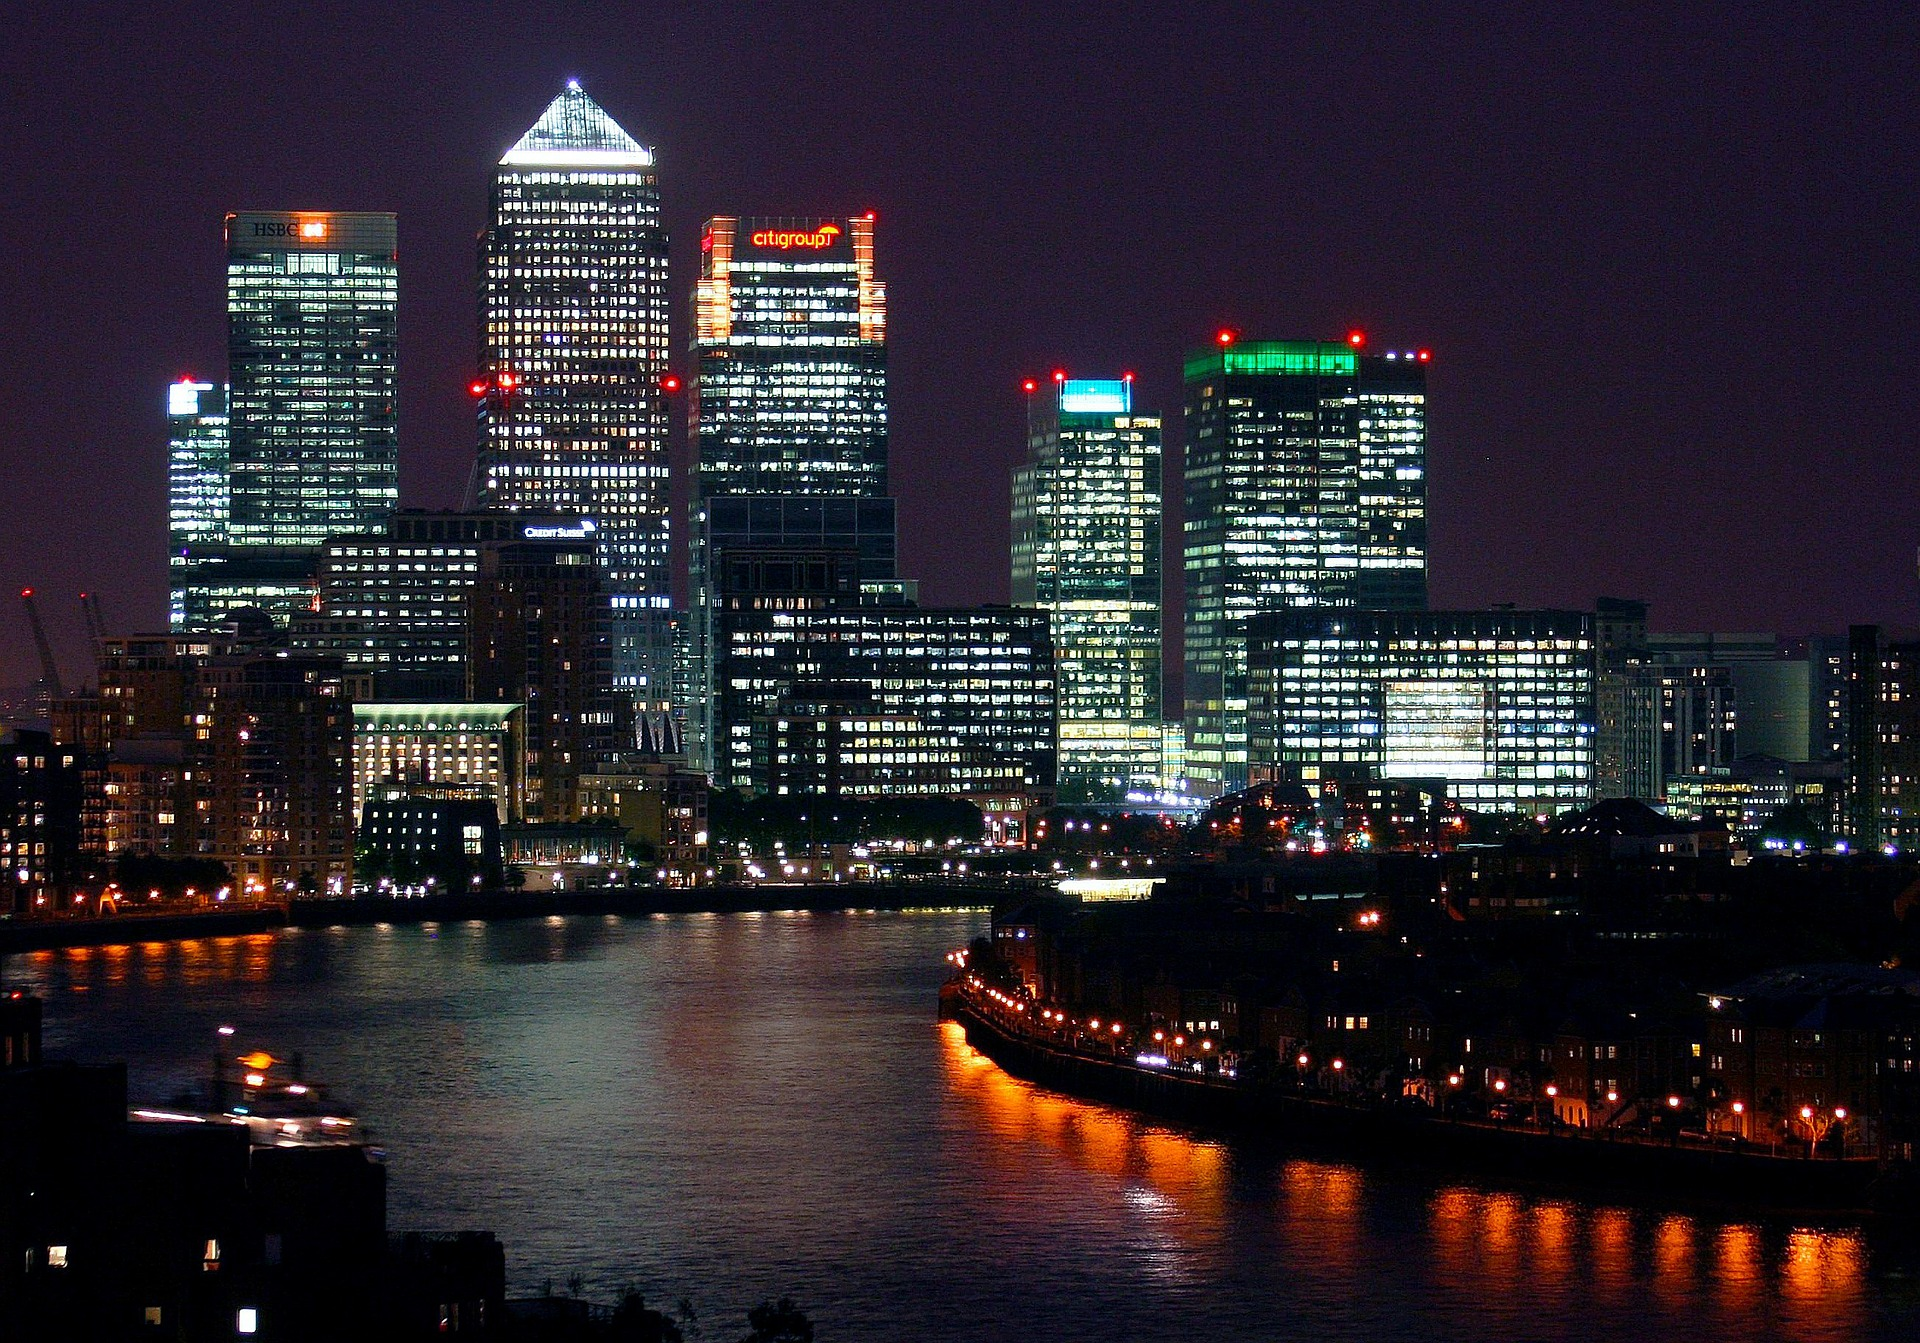 The Advantages Of Having An Offshore Company